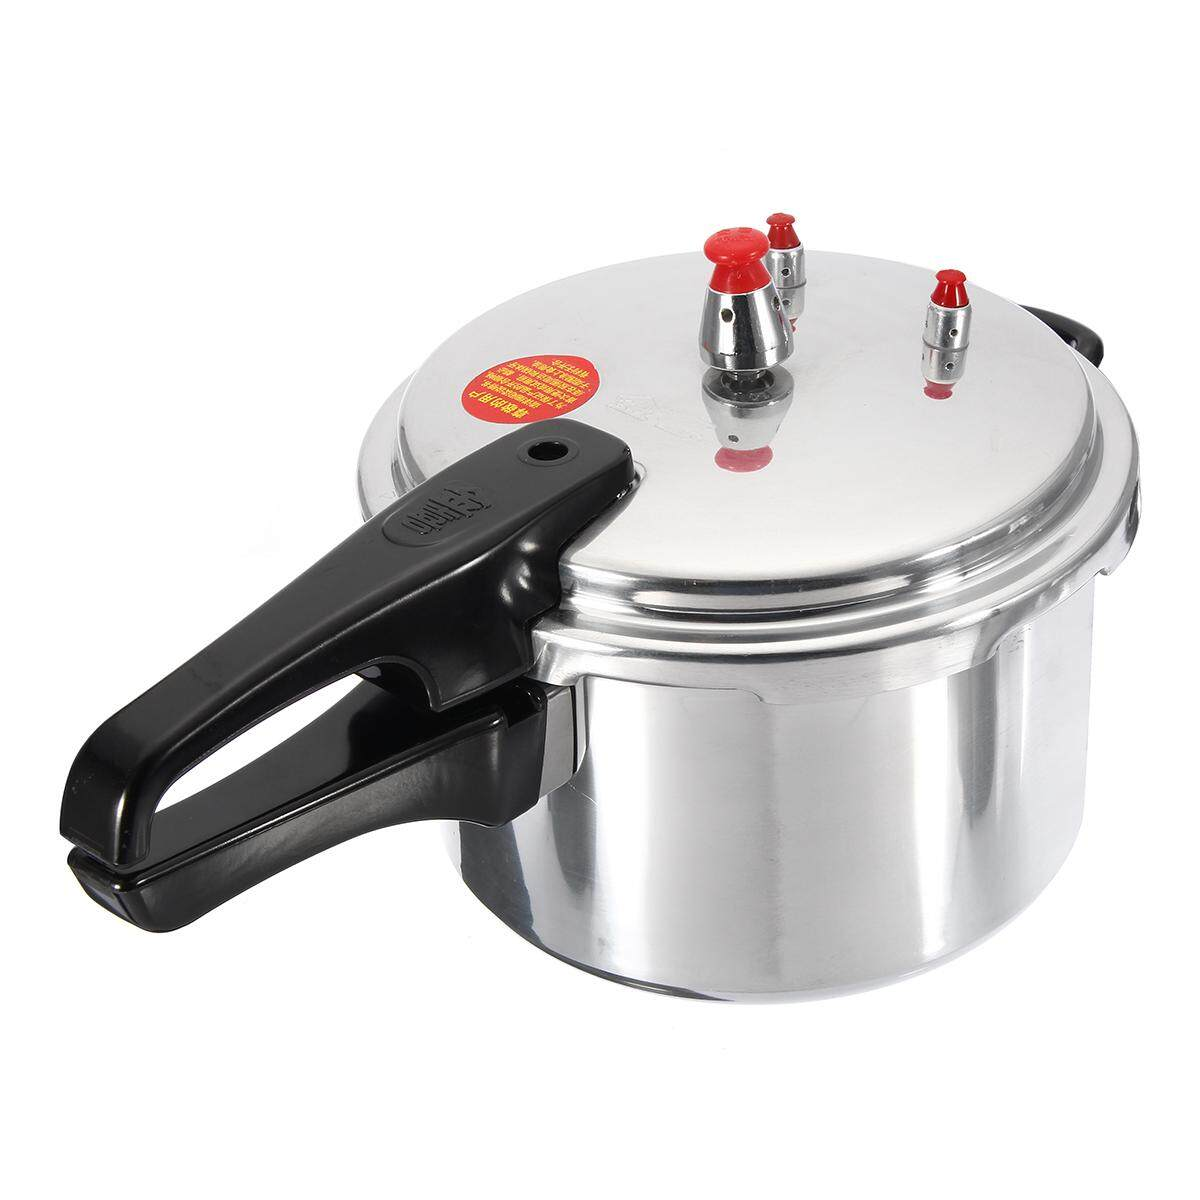 Aluminium Alloy Pressure Cooker Gas Stove Cooking Safety Energy-Saving Cooker 24cm - Intl By Freebang.